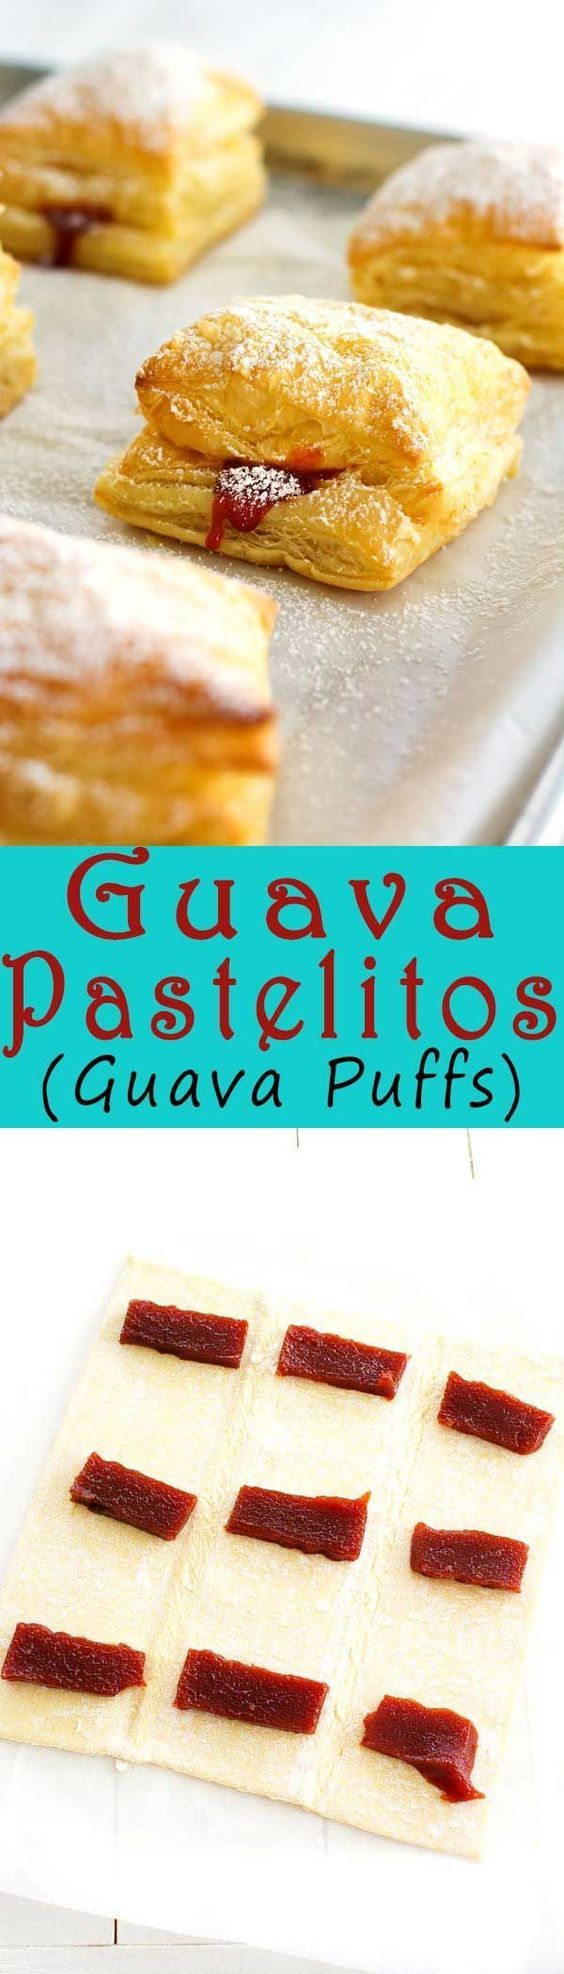 Guava pastelitos (guava pastry) made with puff pastry and guava paste. These Puerto Rican sweet guava puffs look so fancy but are so easy! | Puerto Rican food (scheduled via http://www.tailwindapp.com?utm_source=pinterest&utm_medium=twpin)